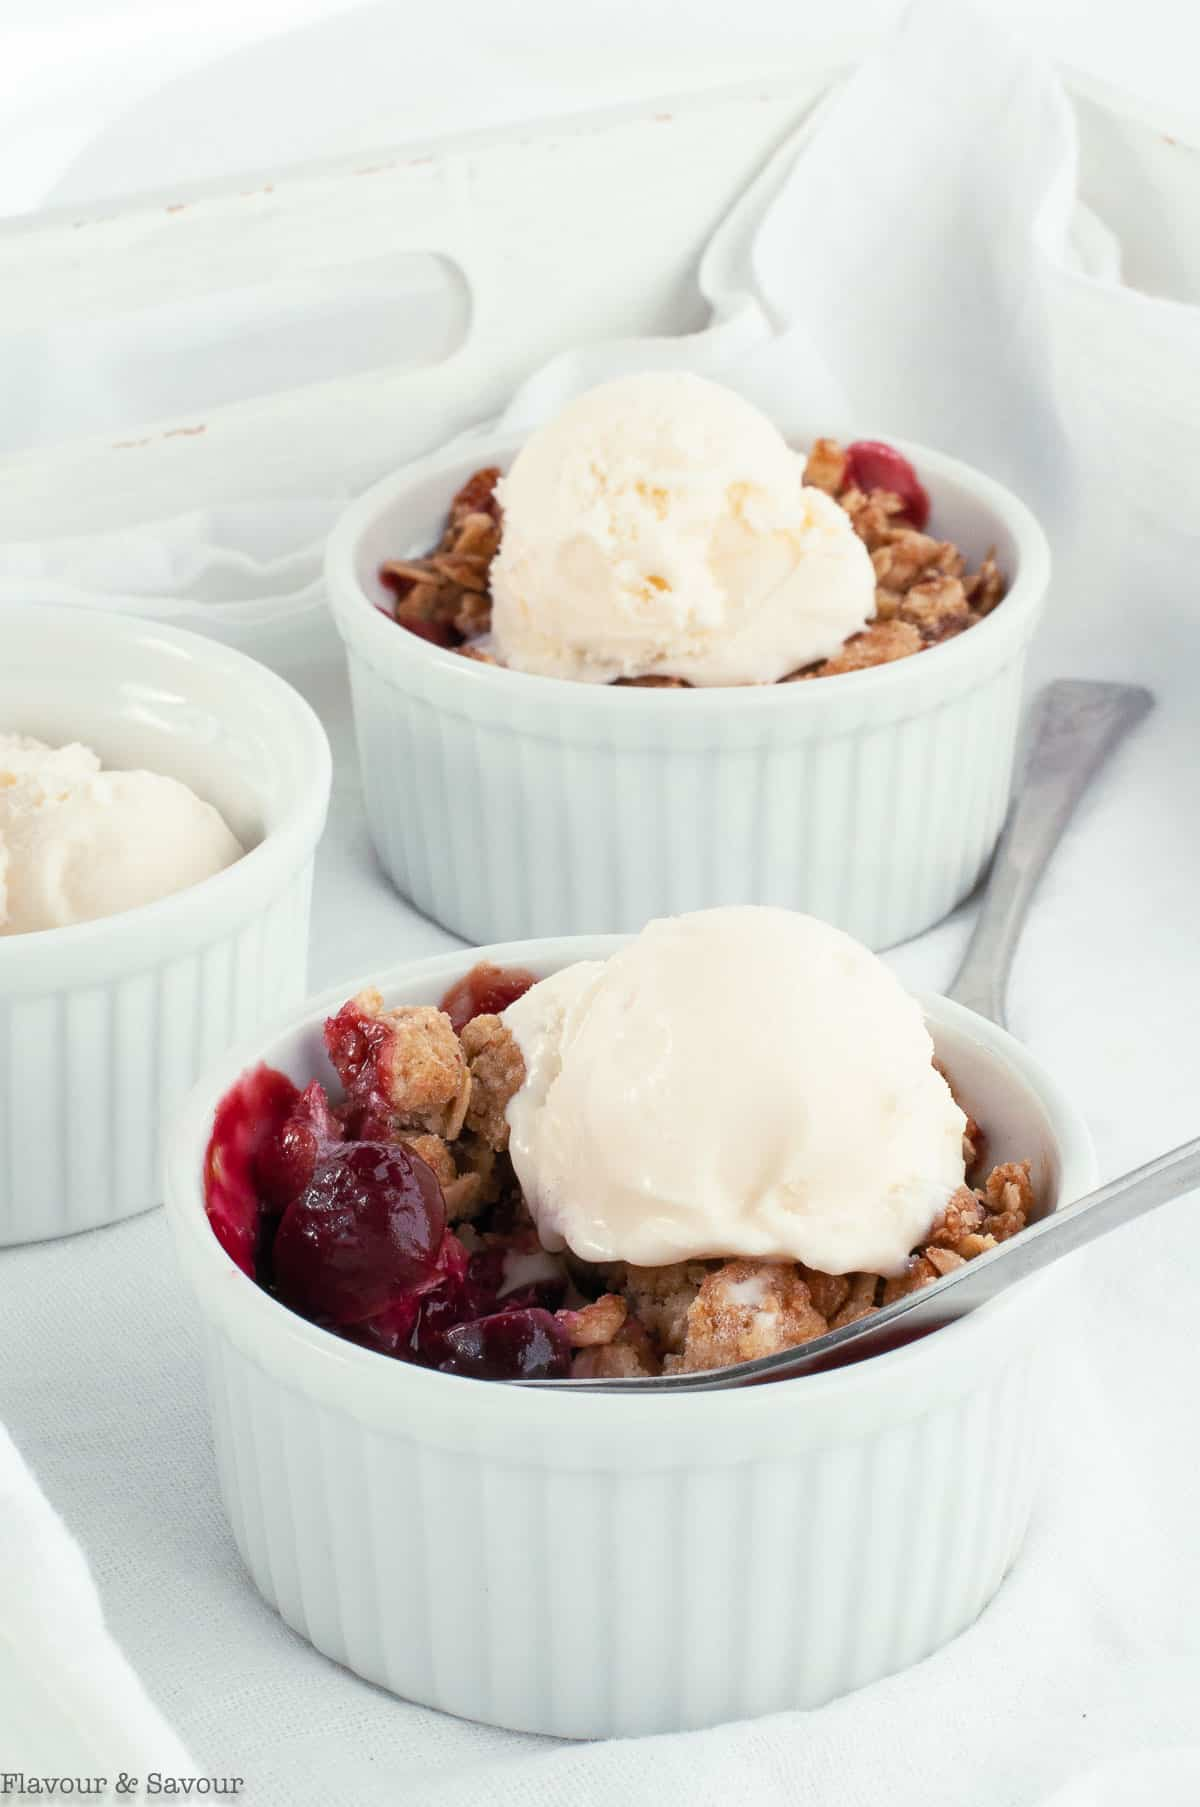 A spoonful of Air Fryer Cherry Almond Crisp with ice cream